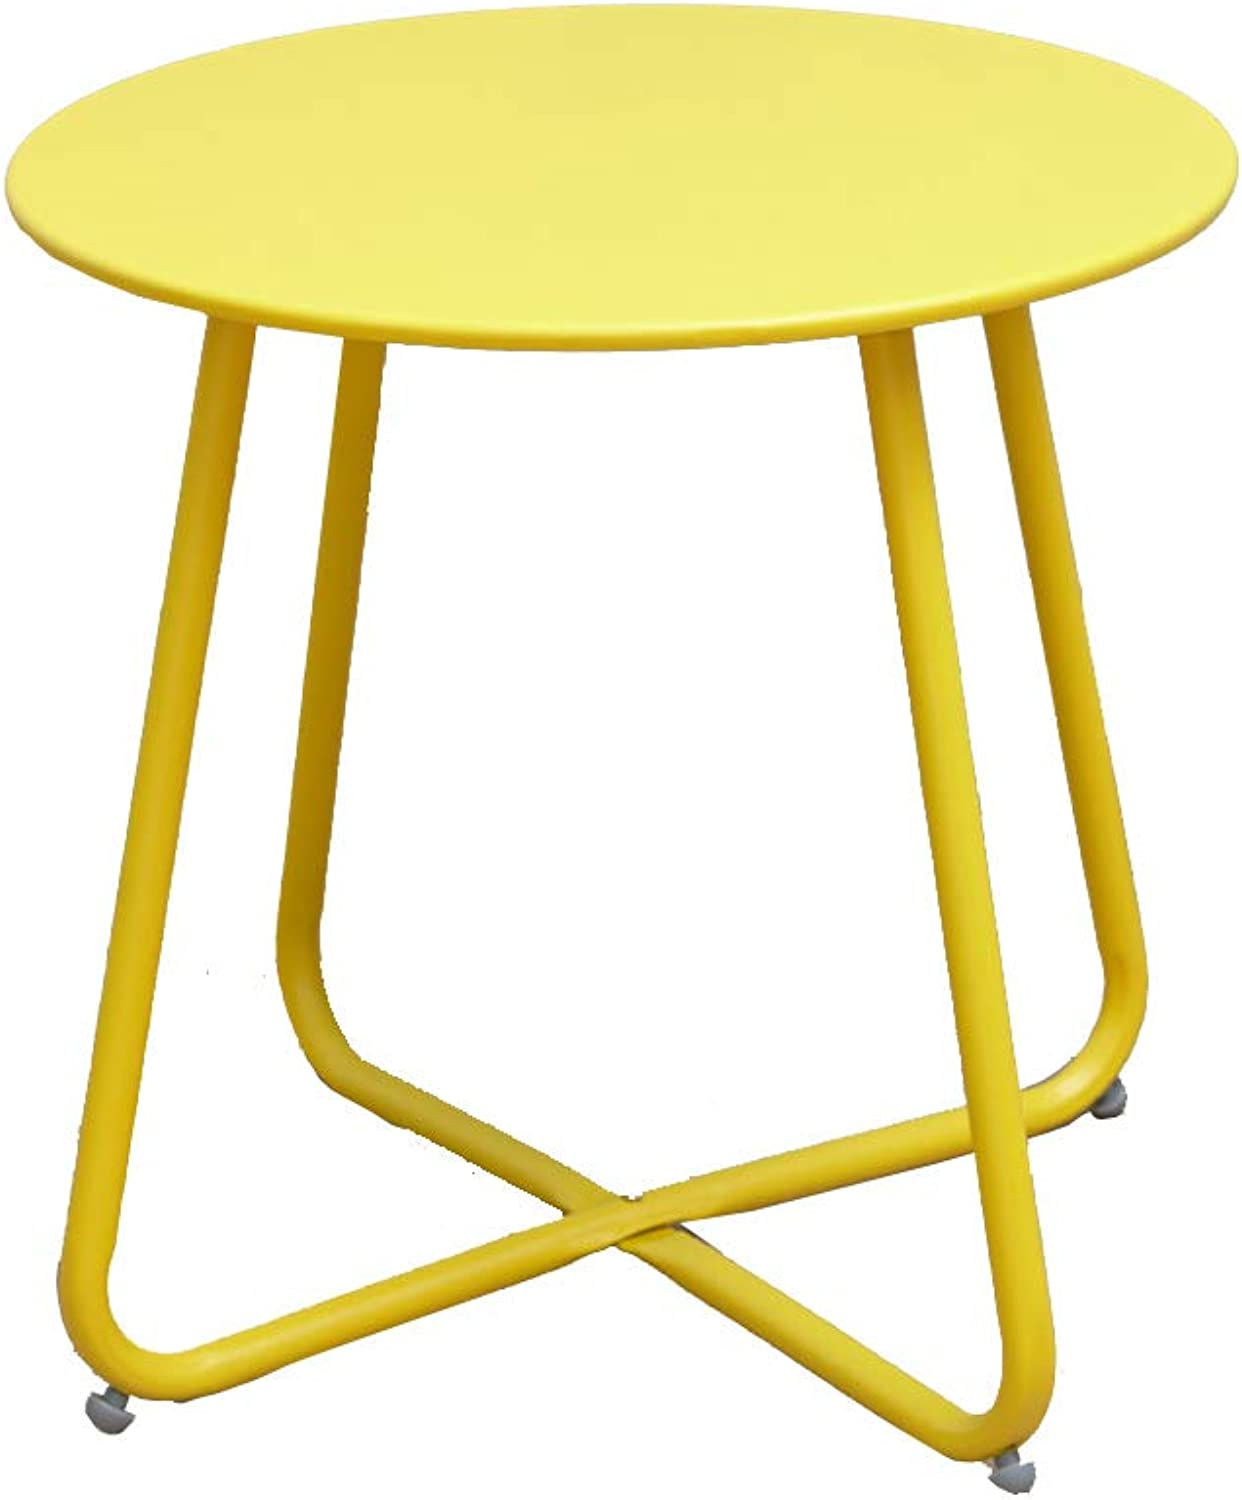 Small Coffee Table Simple Side Table Bedroom Small Round Table Wrought Iron Multifunctional Sofa Table 5 colors (color   Yellow)